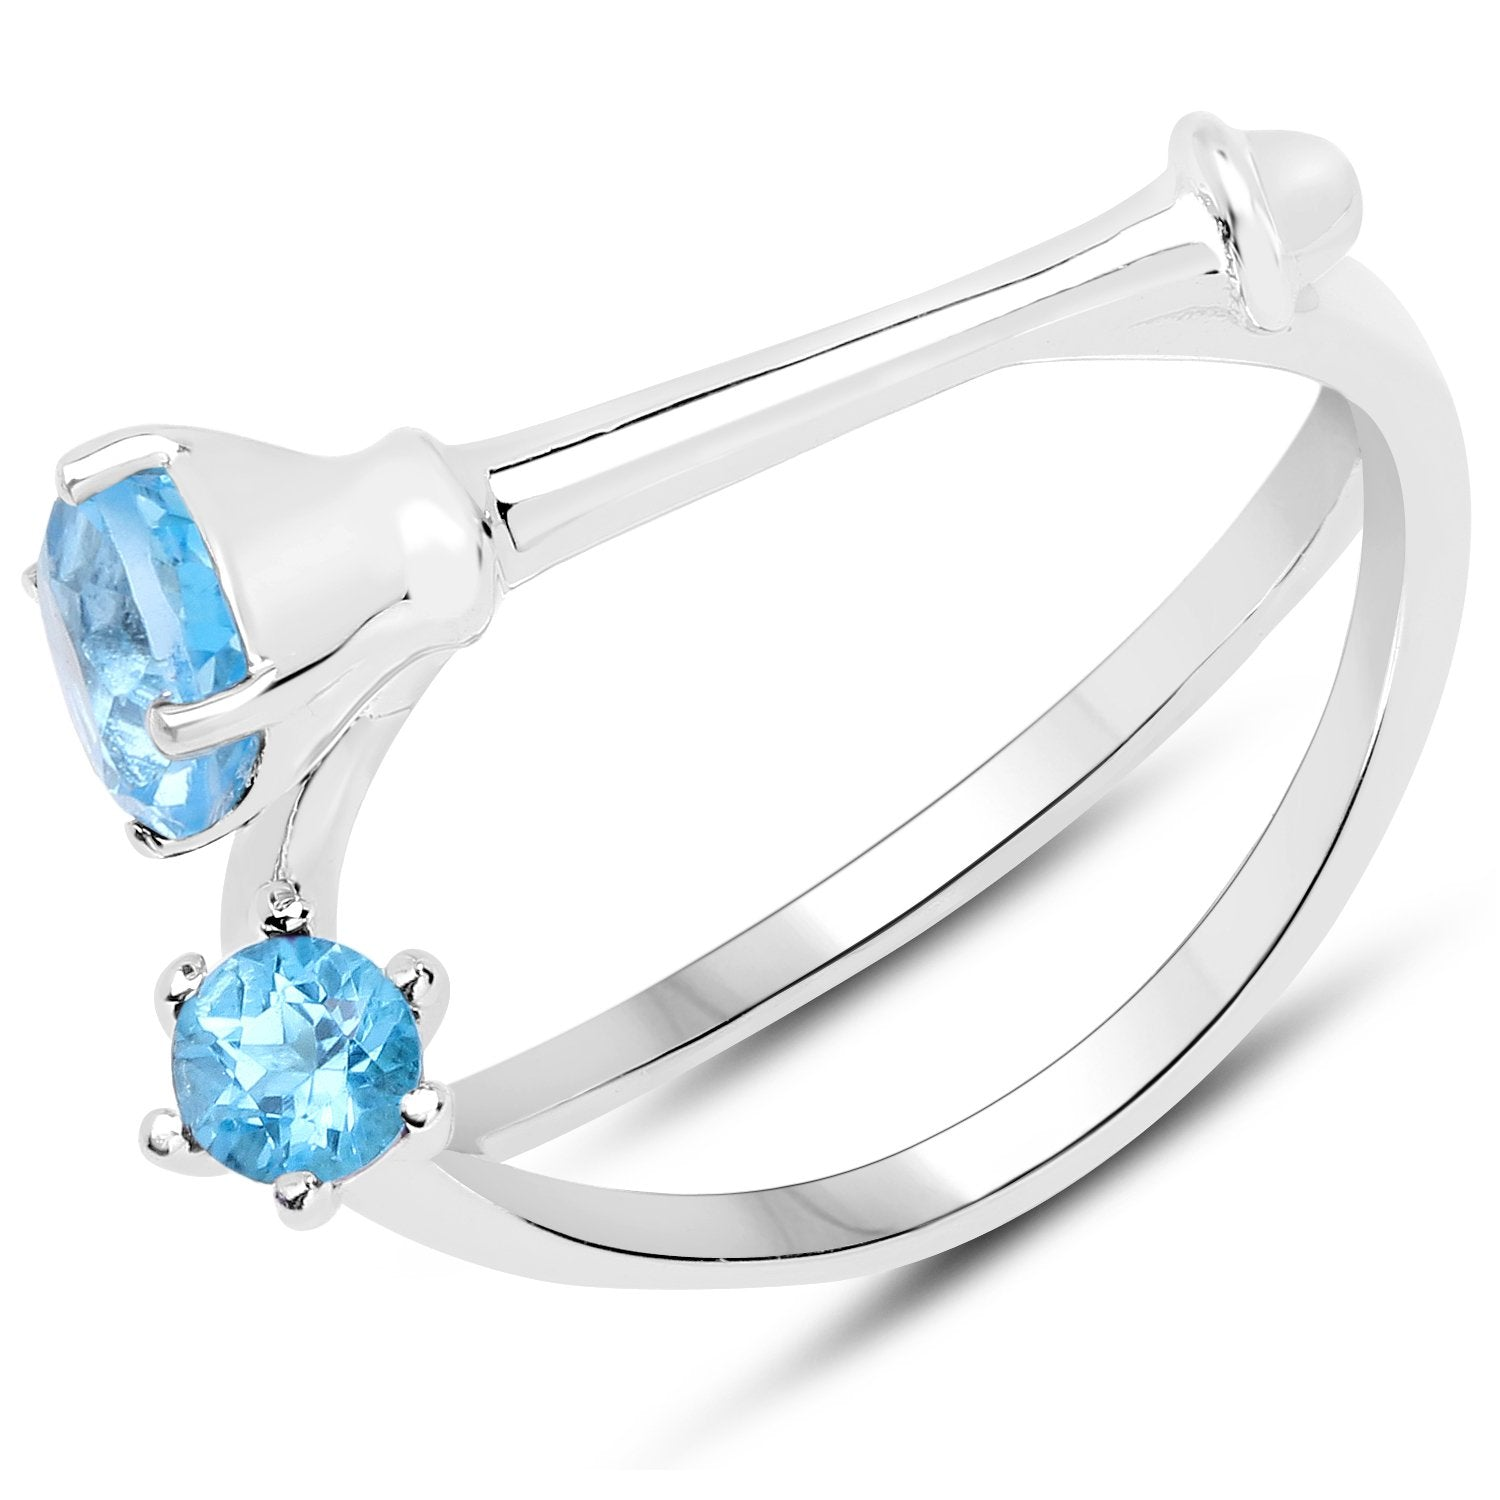 LoveHuang 0.67 Carats Genuine Swiss Blue Topaz Bones Ring Solid .925 Sterling Silver With Rhodium Plating